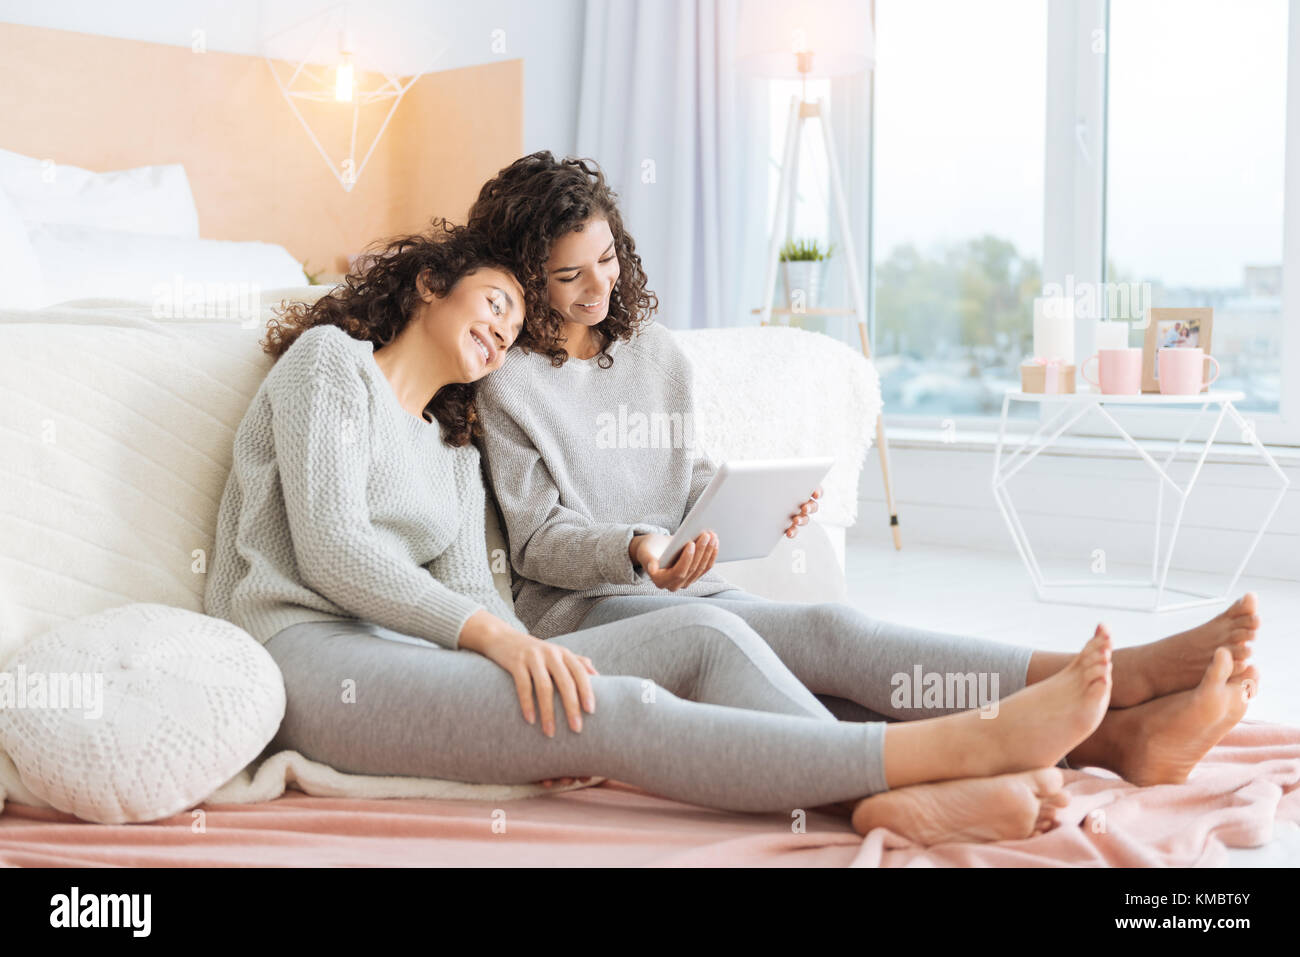 Loving siblings watching videos on touchpad together - Stock Image